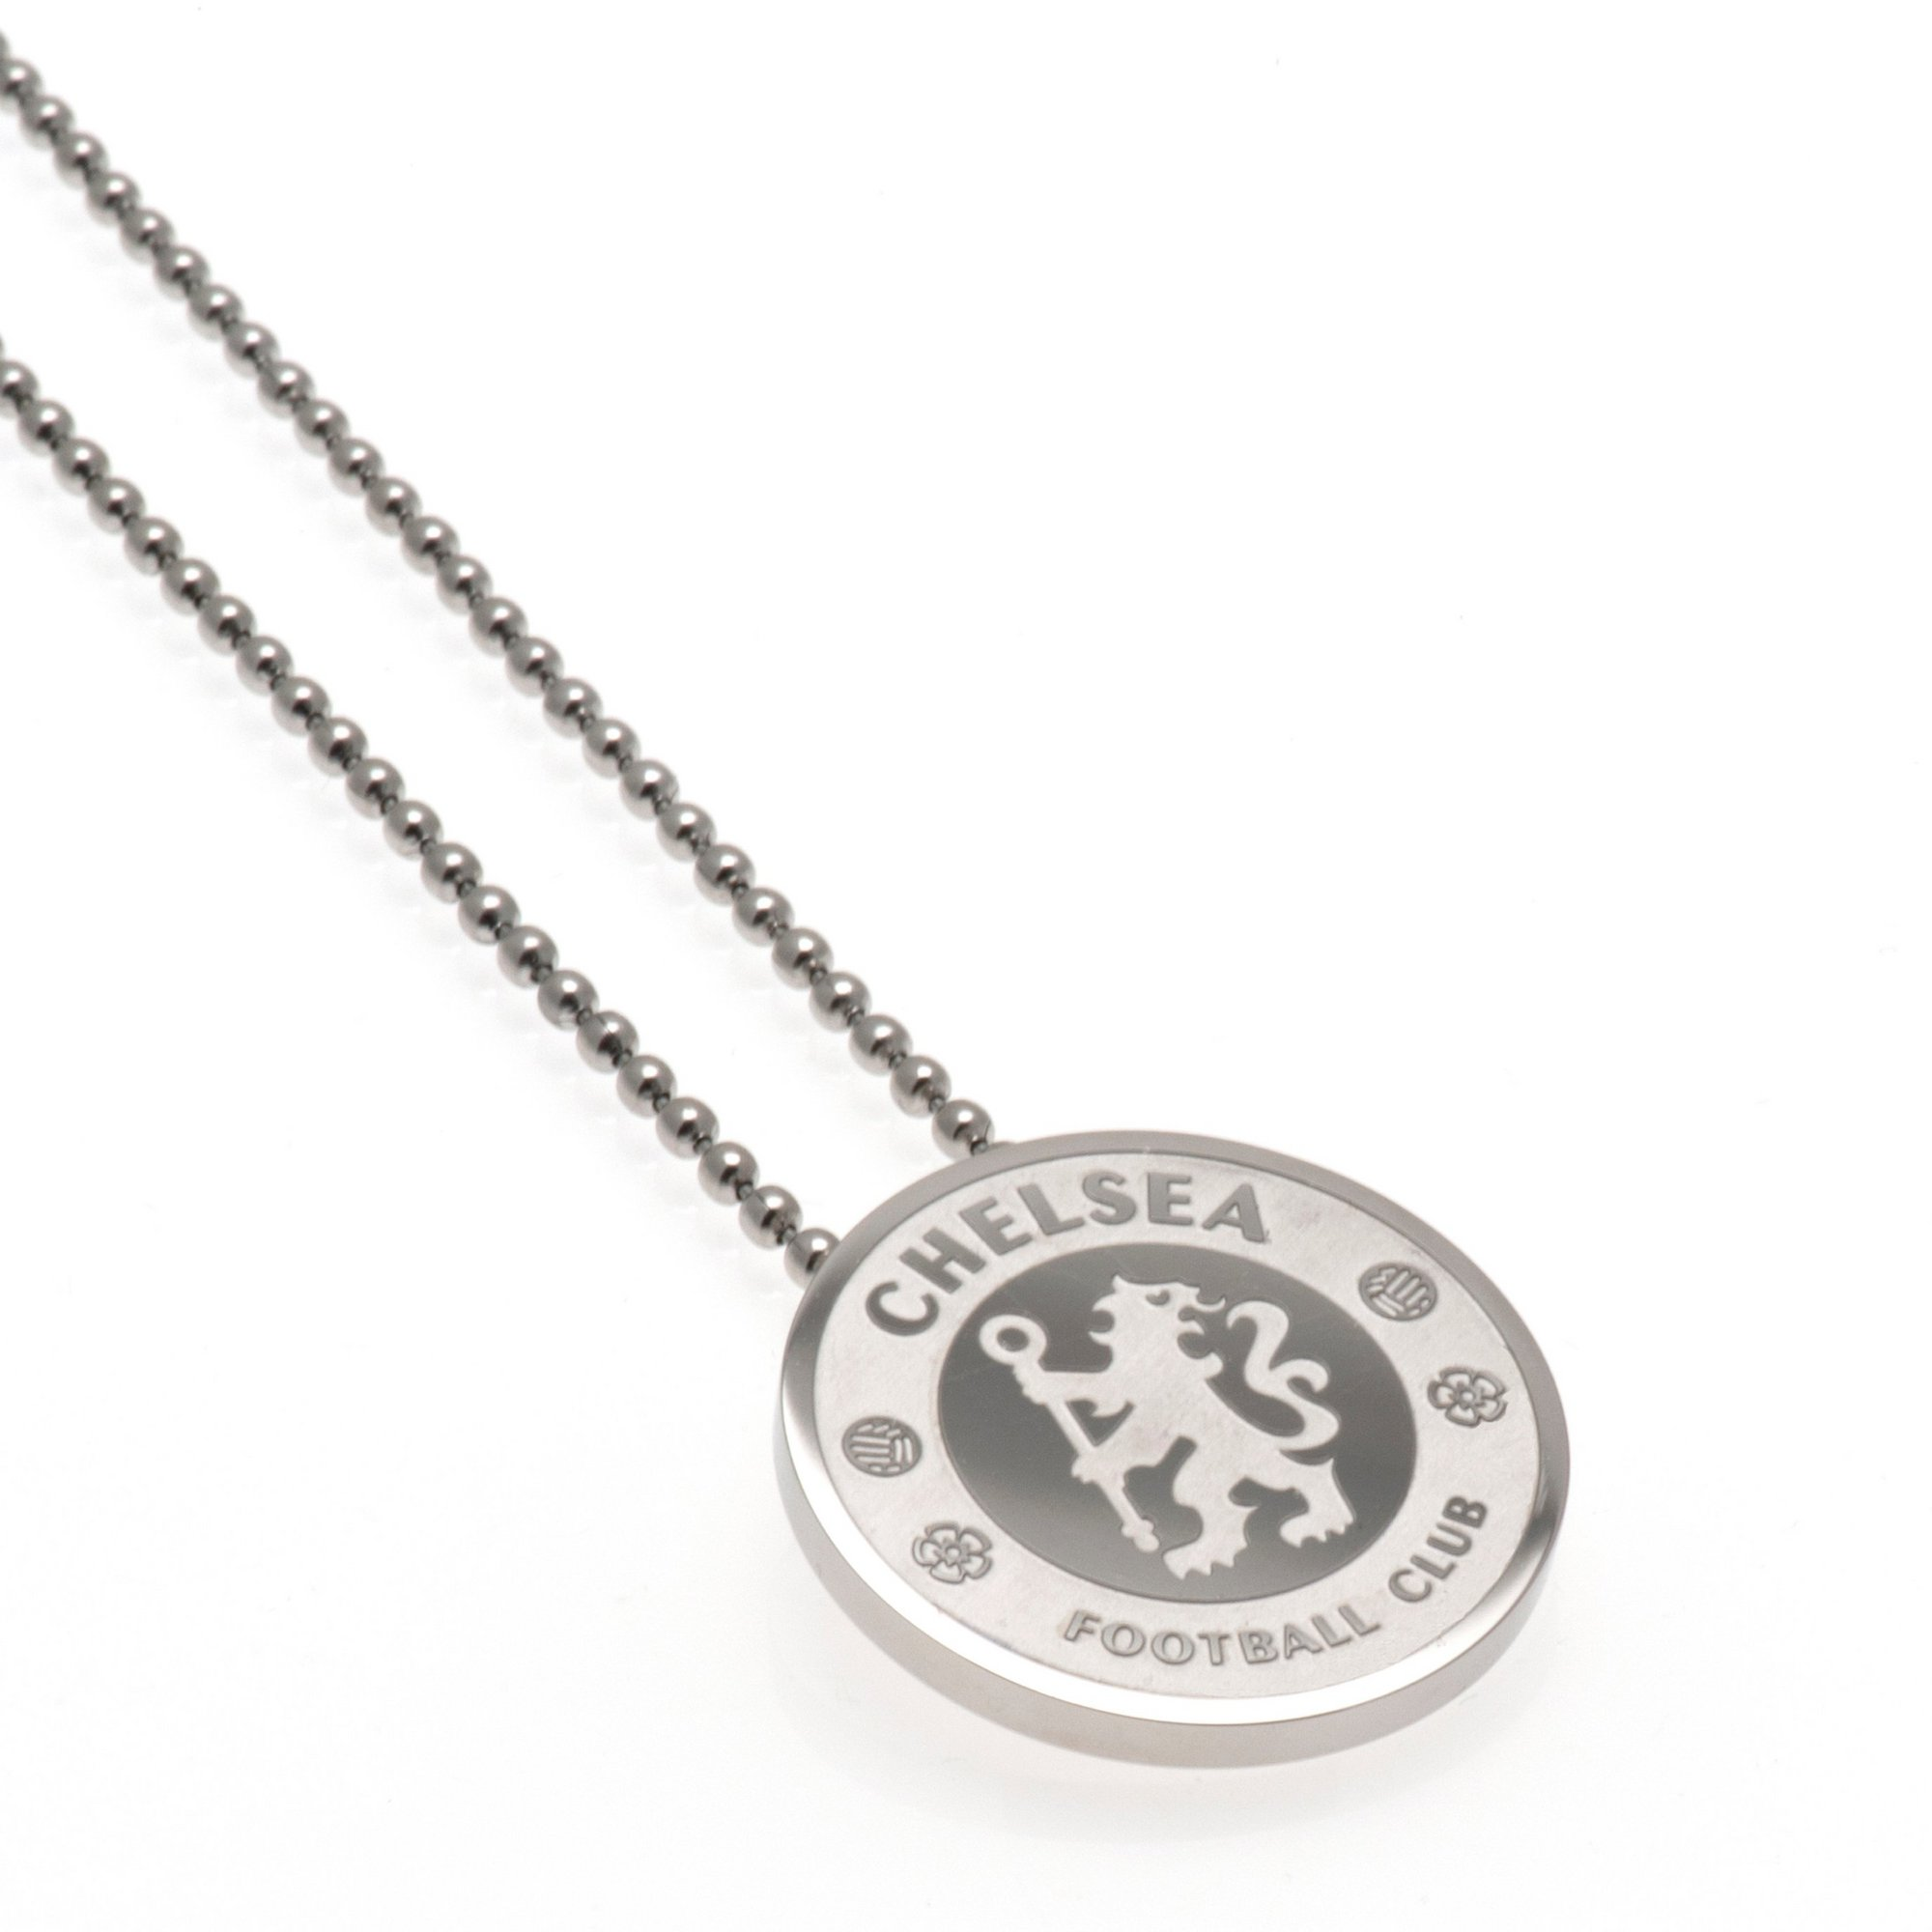 Image of Chelsea FC Stainless Steel Crest Pendant